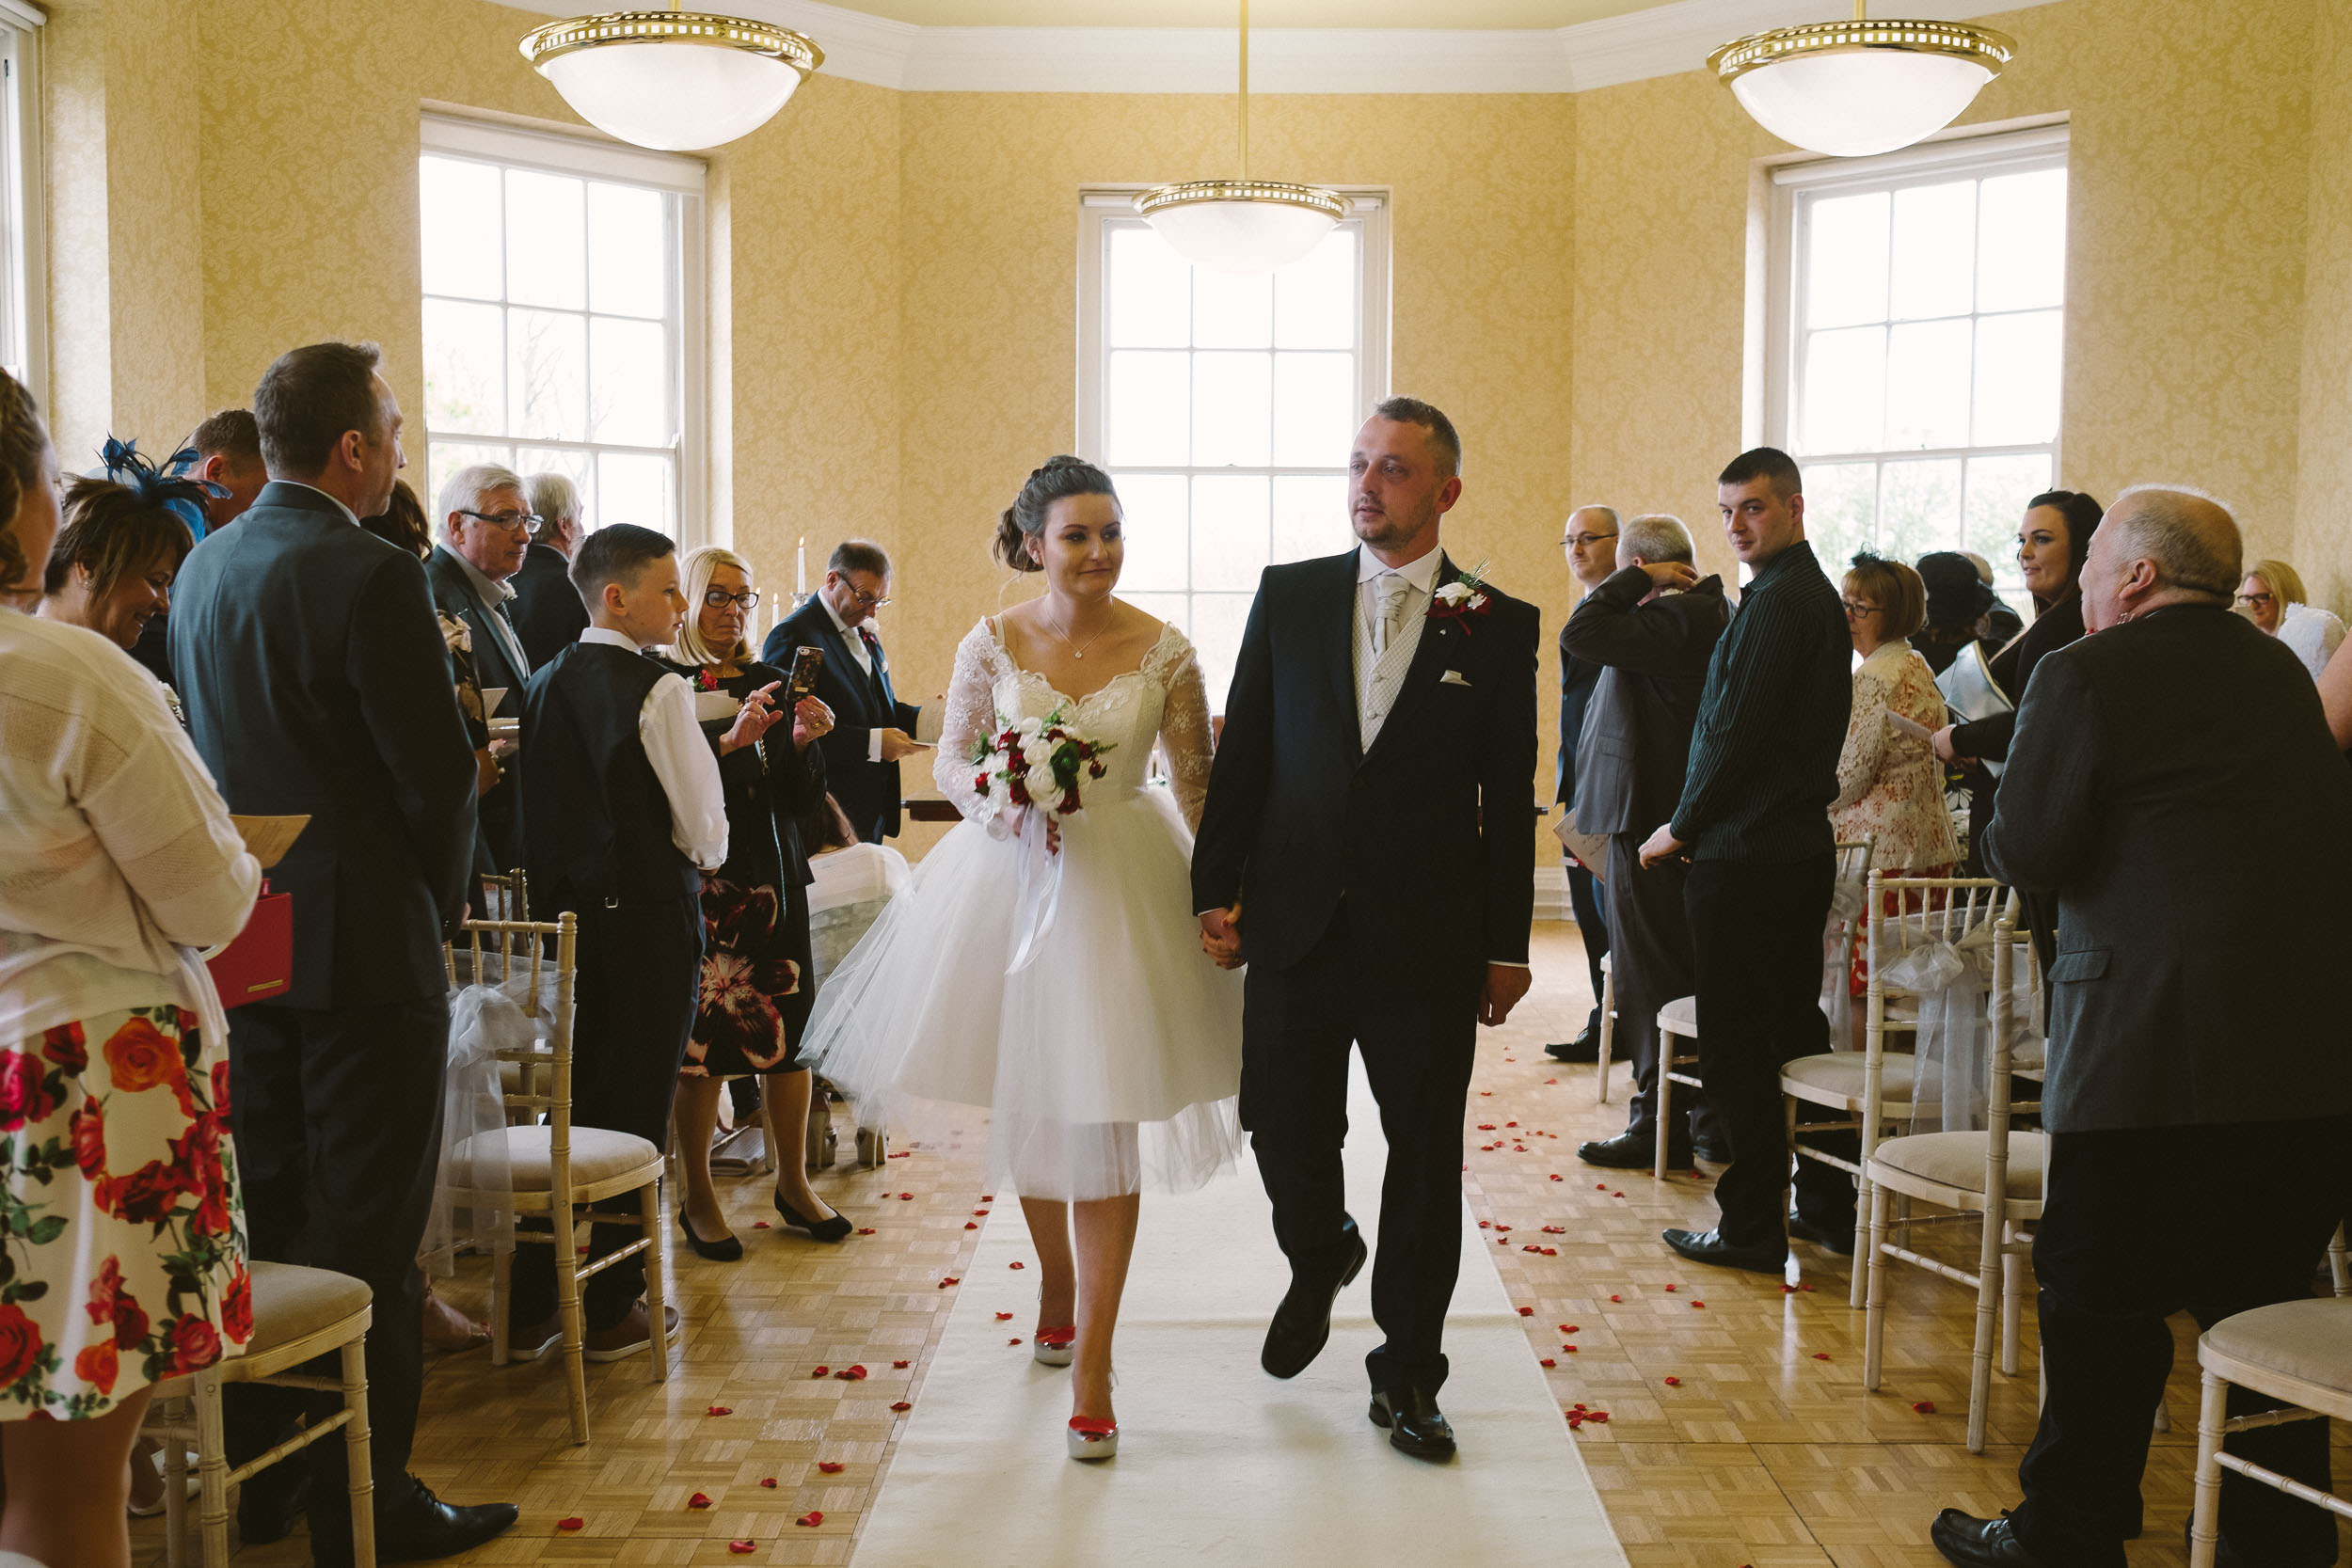 Bride and groom walking back down the aisle at the end of their wedding ceremony